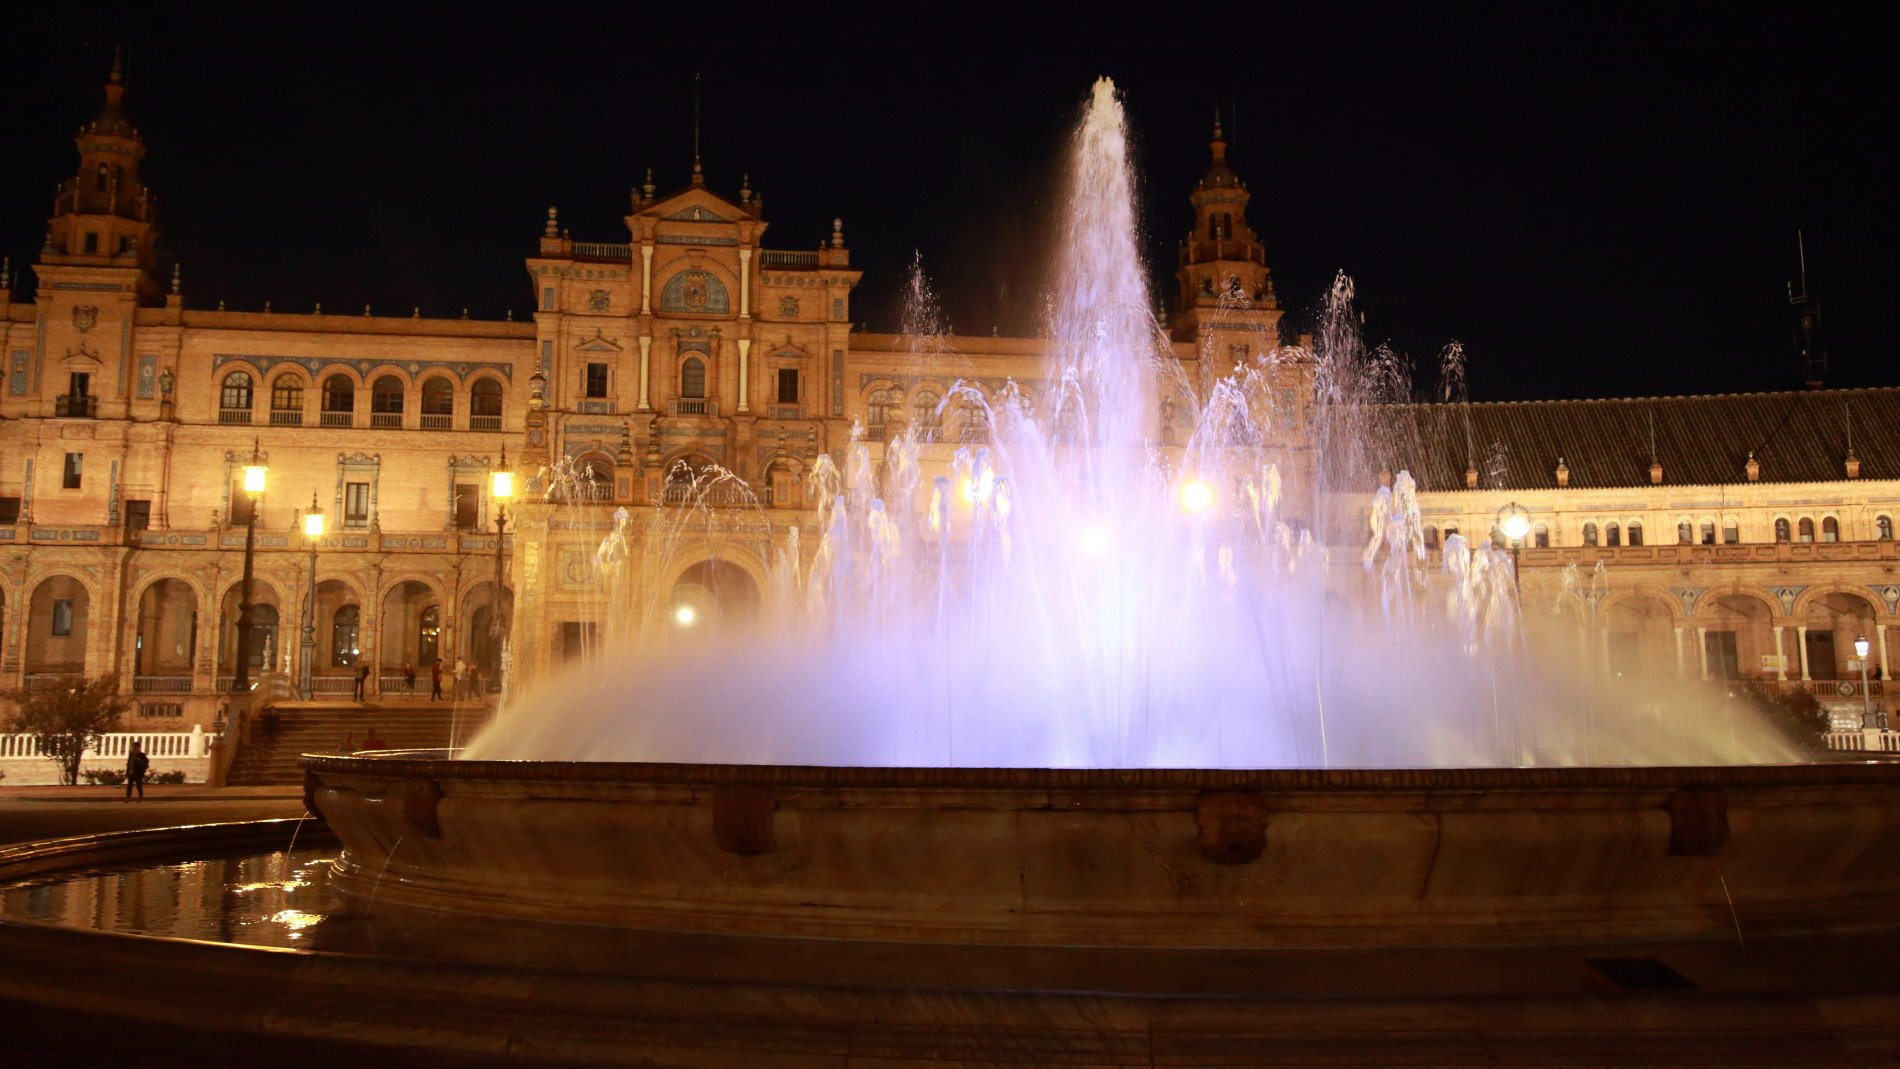 Seville-88.JPG-commment